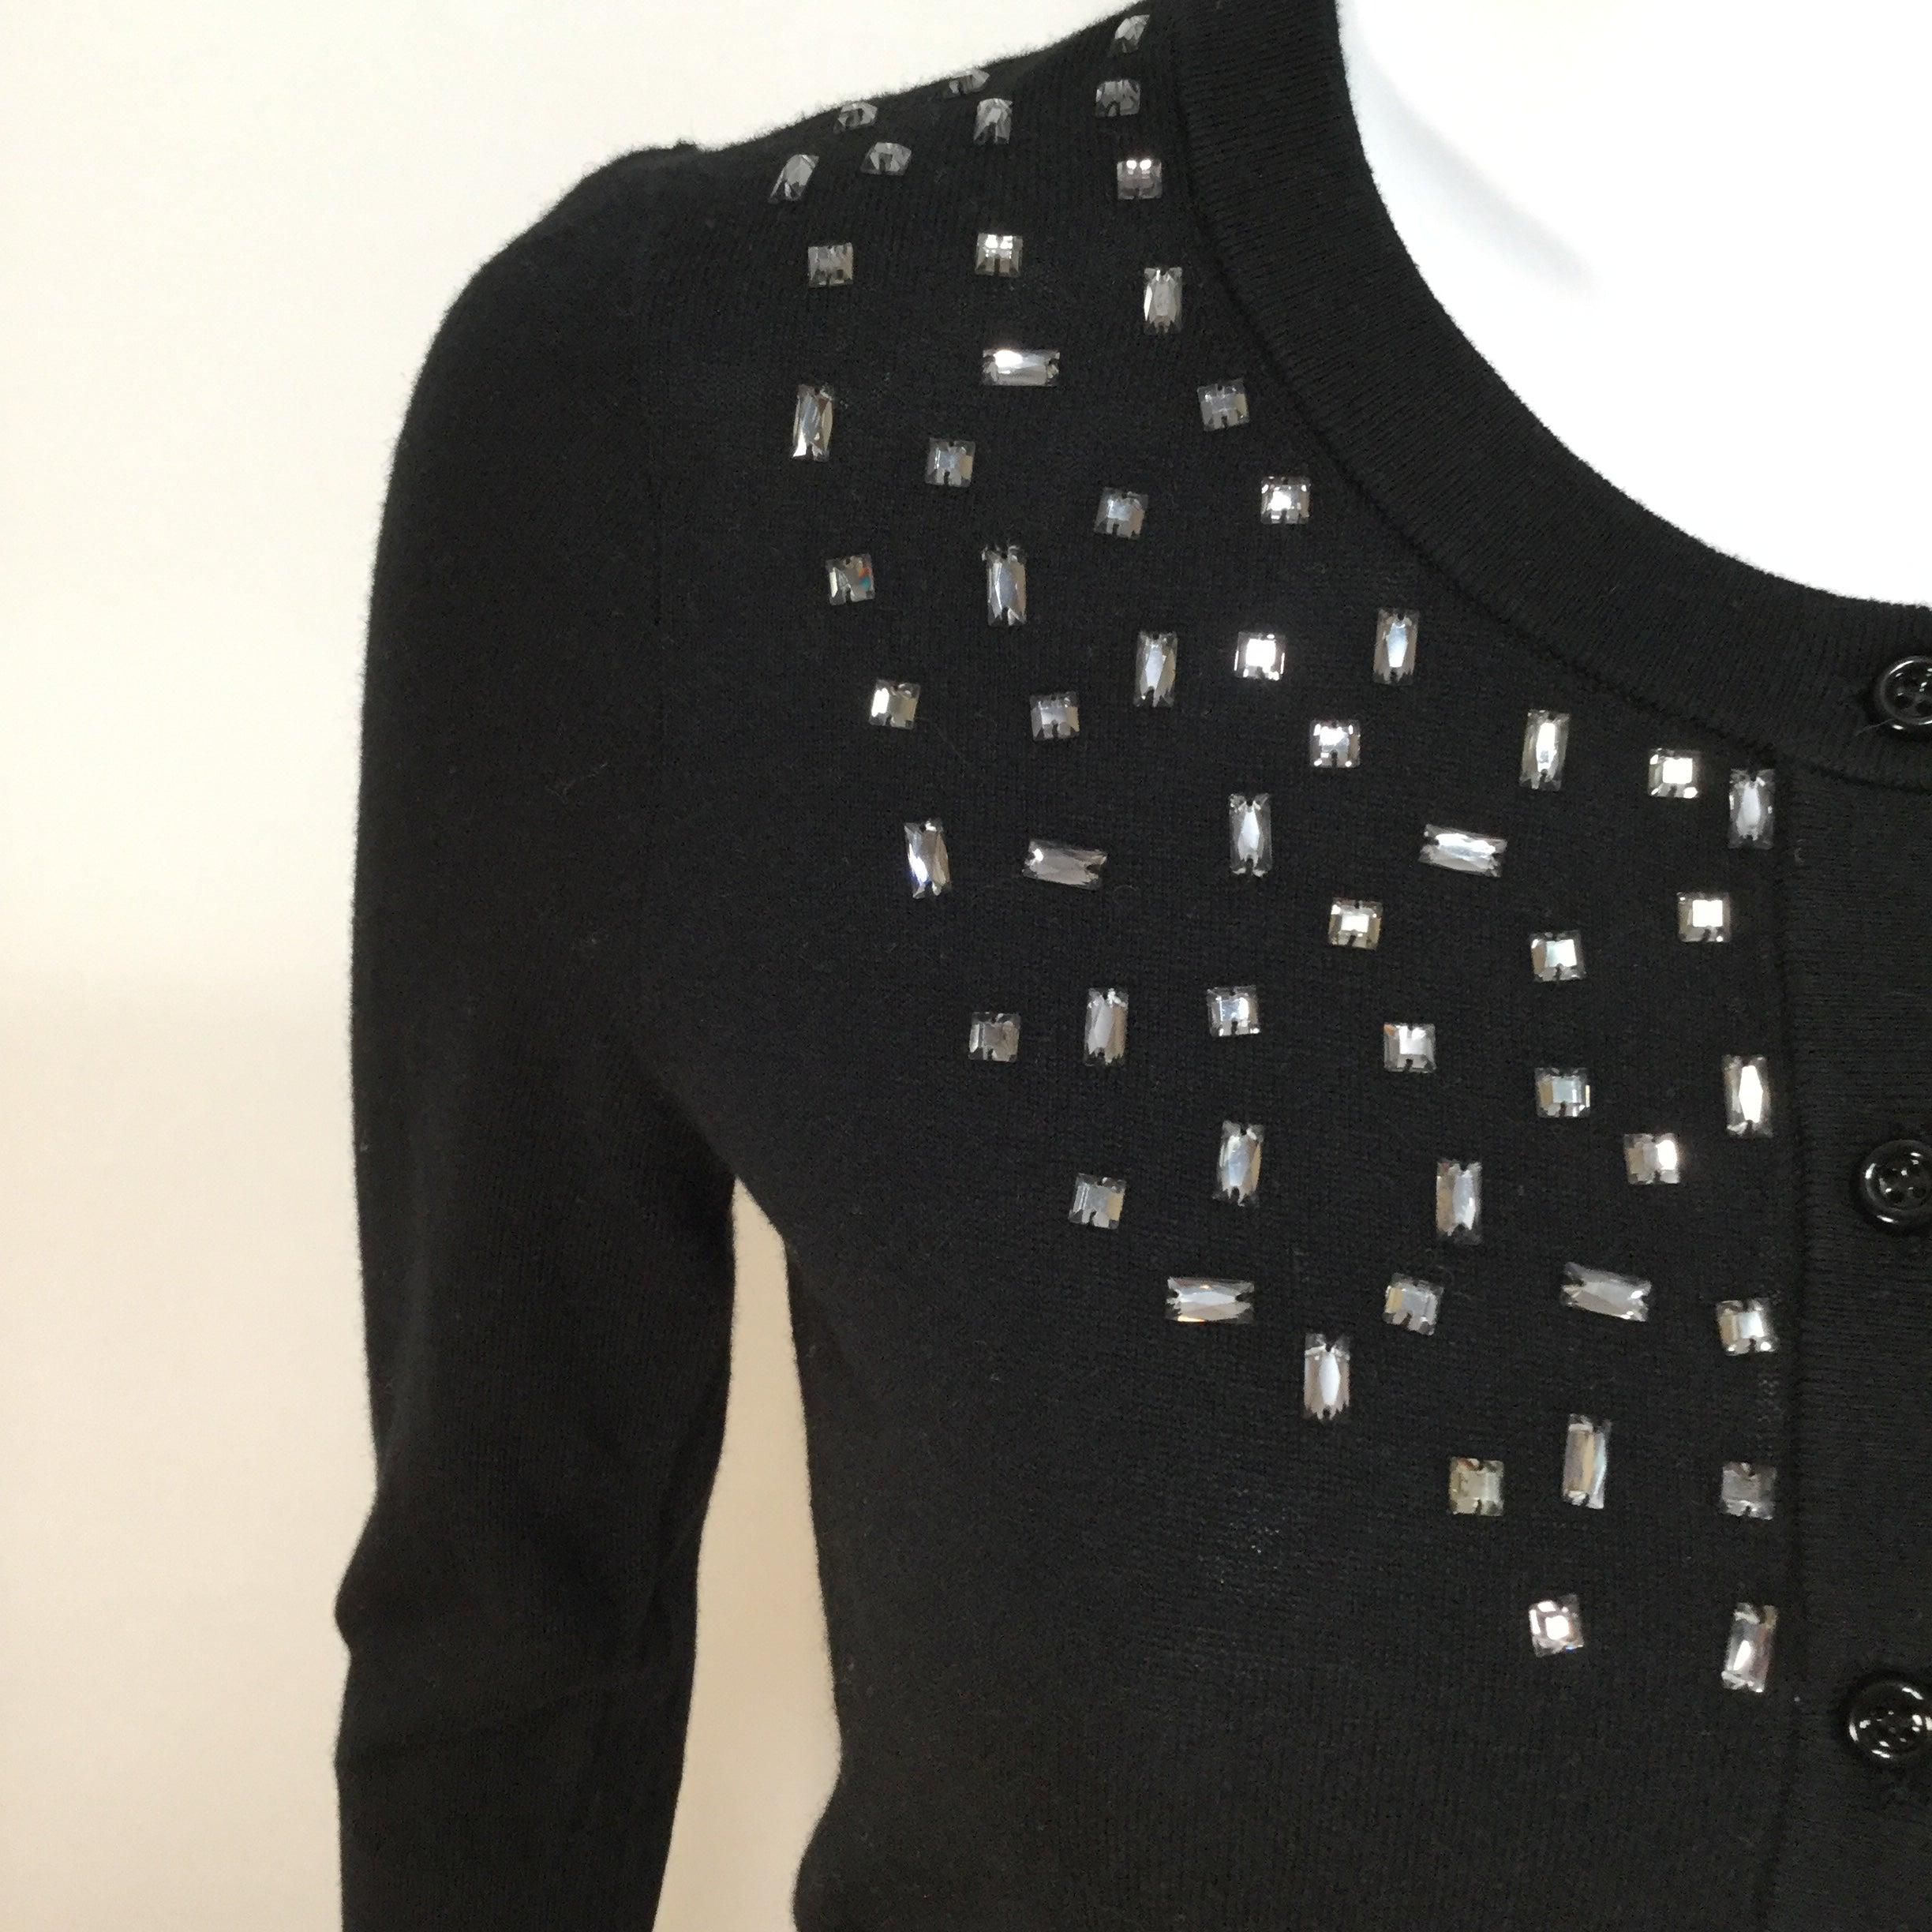 Kate Spade Cardigan size S - BLACK CARDIGAN WITH GEM DETAIL. LIKE NEW WITH EXTRA BUTTONS. SIZE SMALL